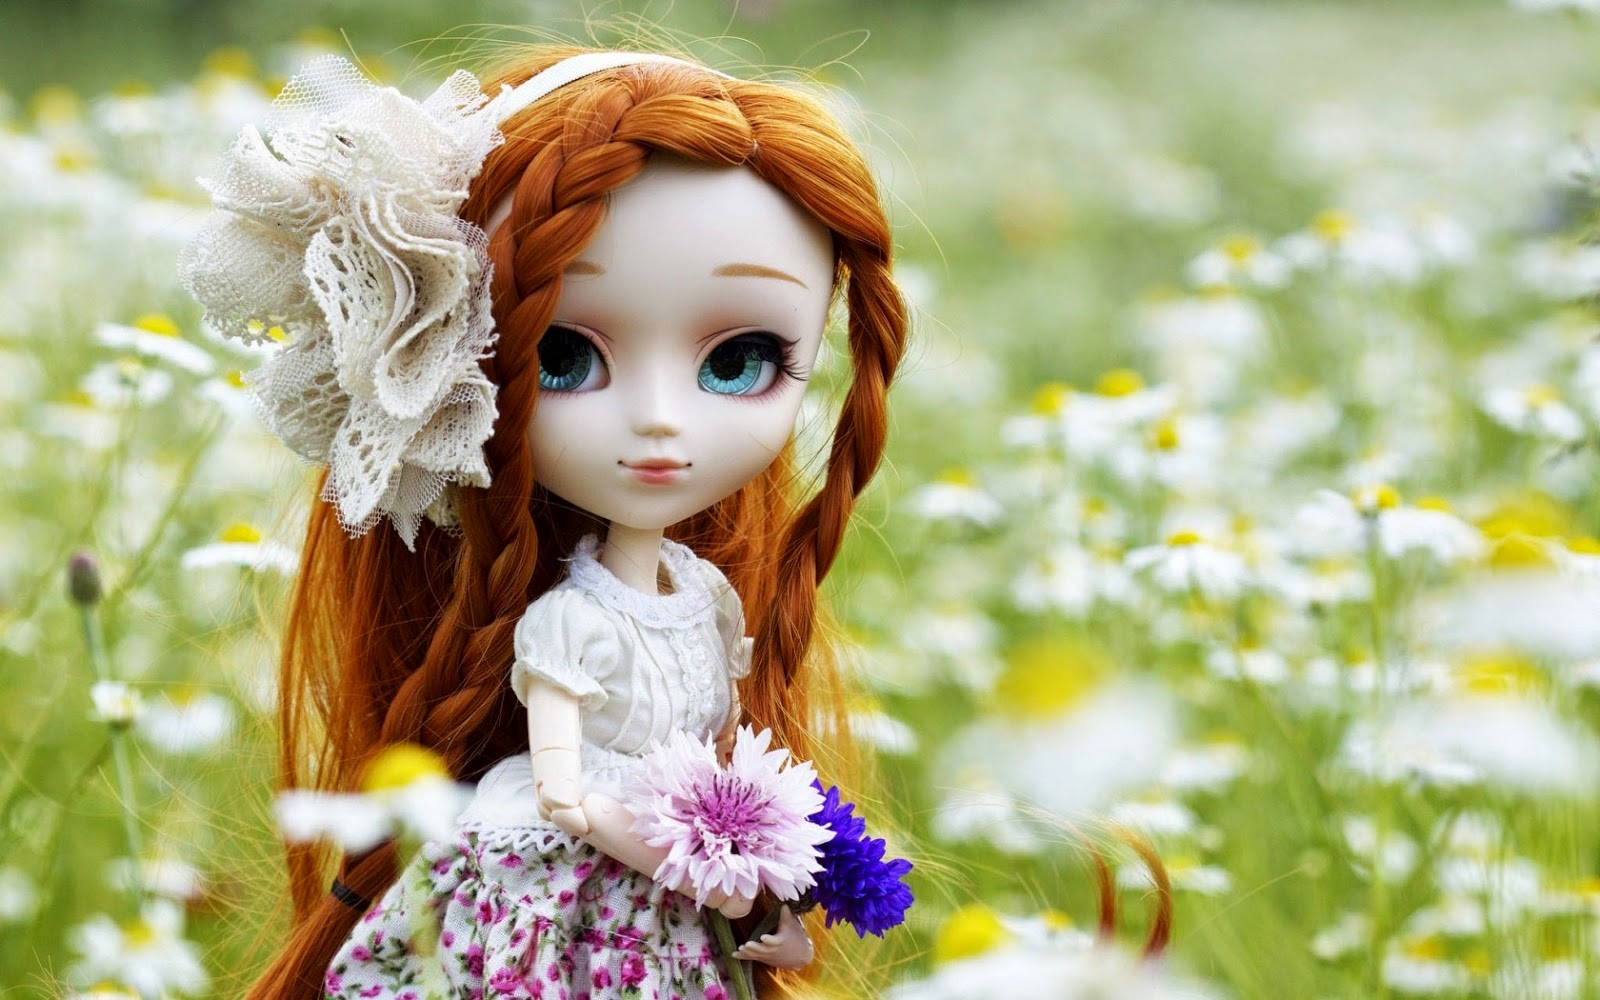 Cute Dolls Wallpapers With Quotes Cute Dolls Wallpapers